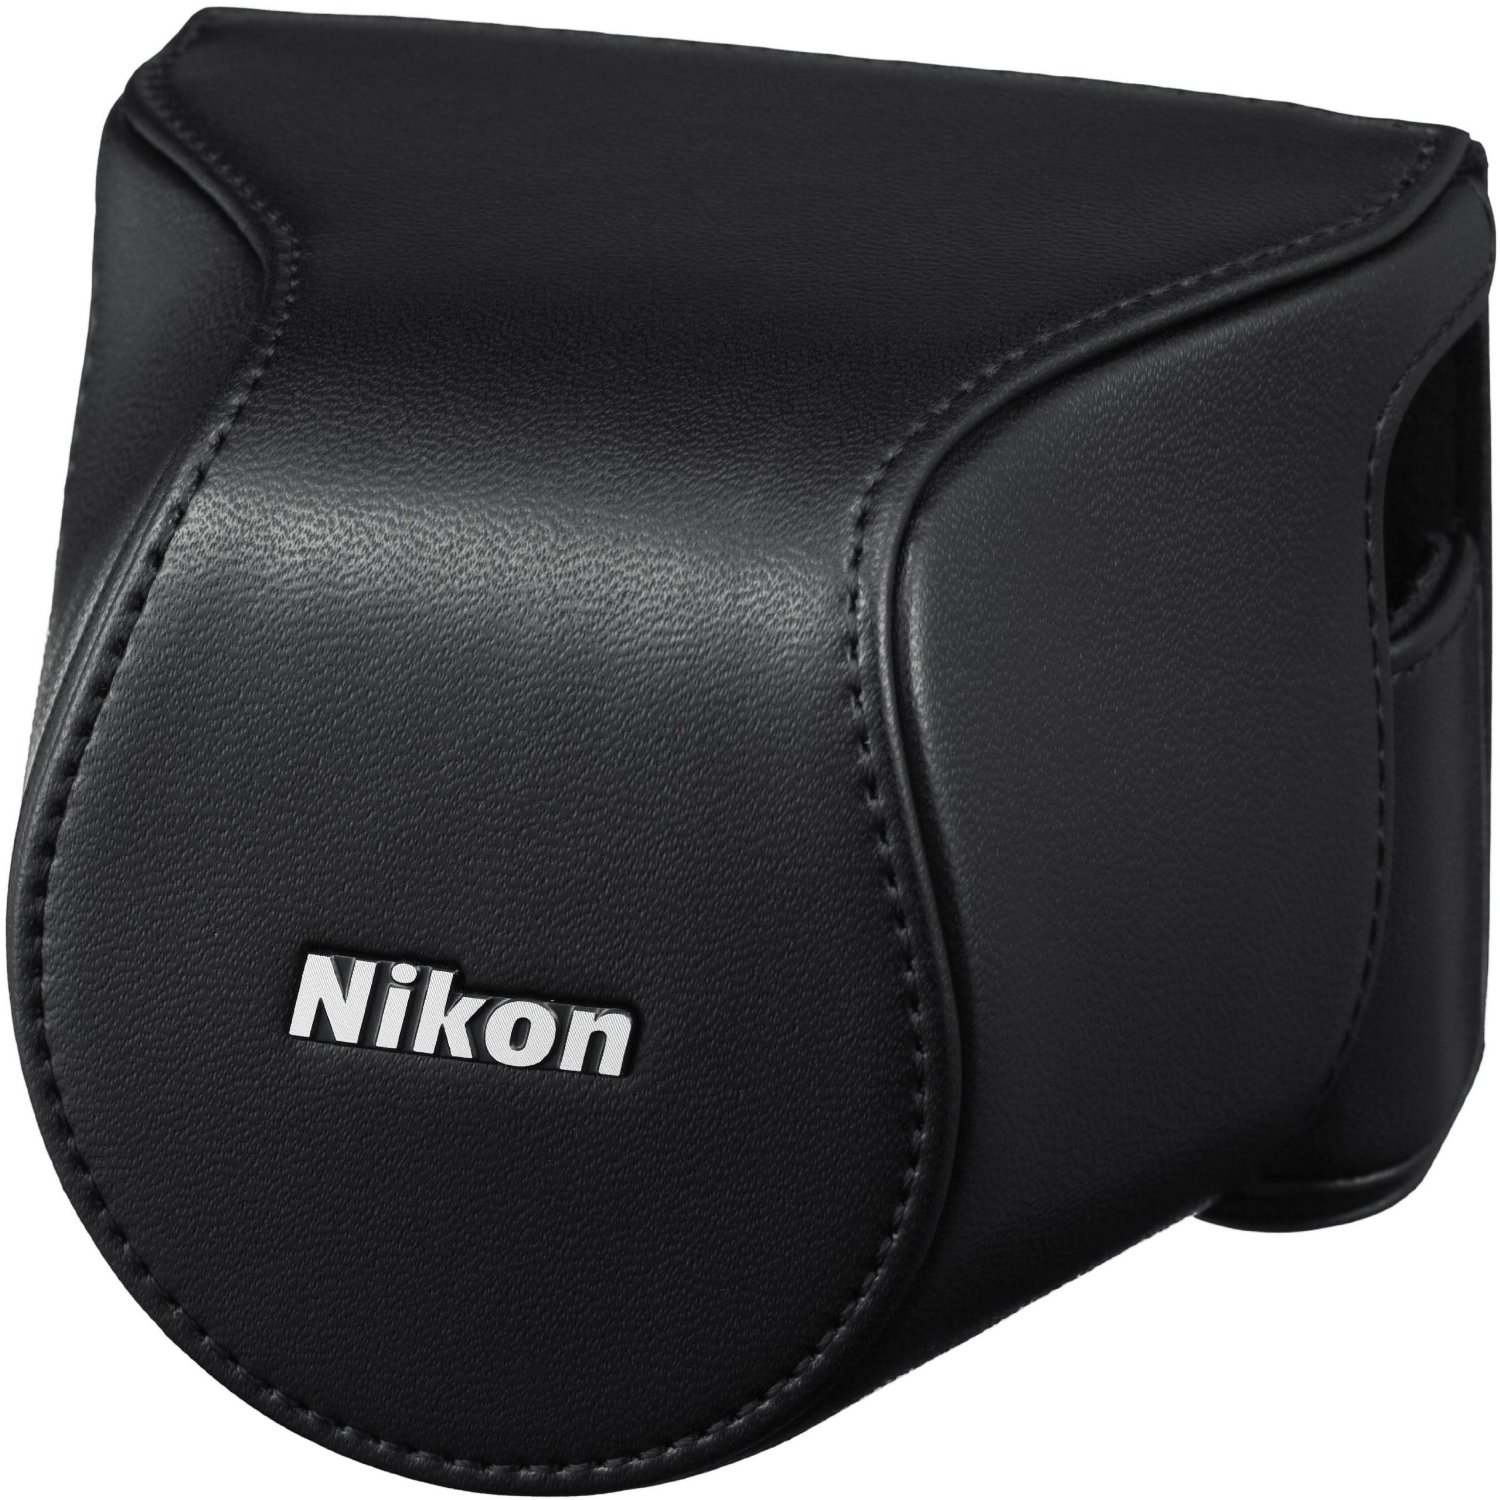 CB-N2200 Black custodia inferiore Nikon 1 S1, J3